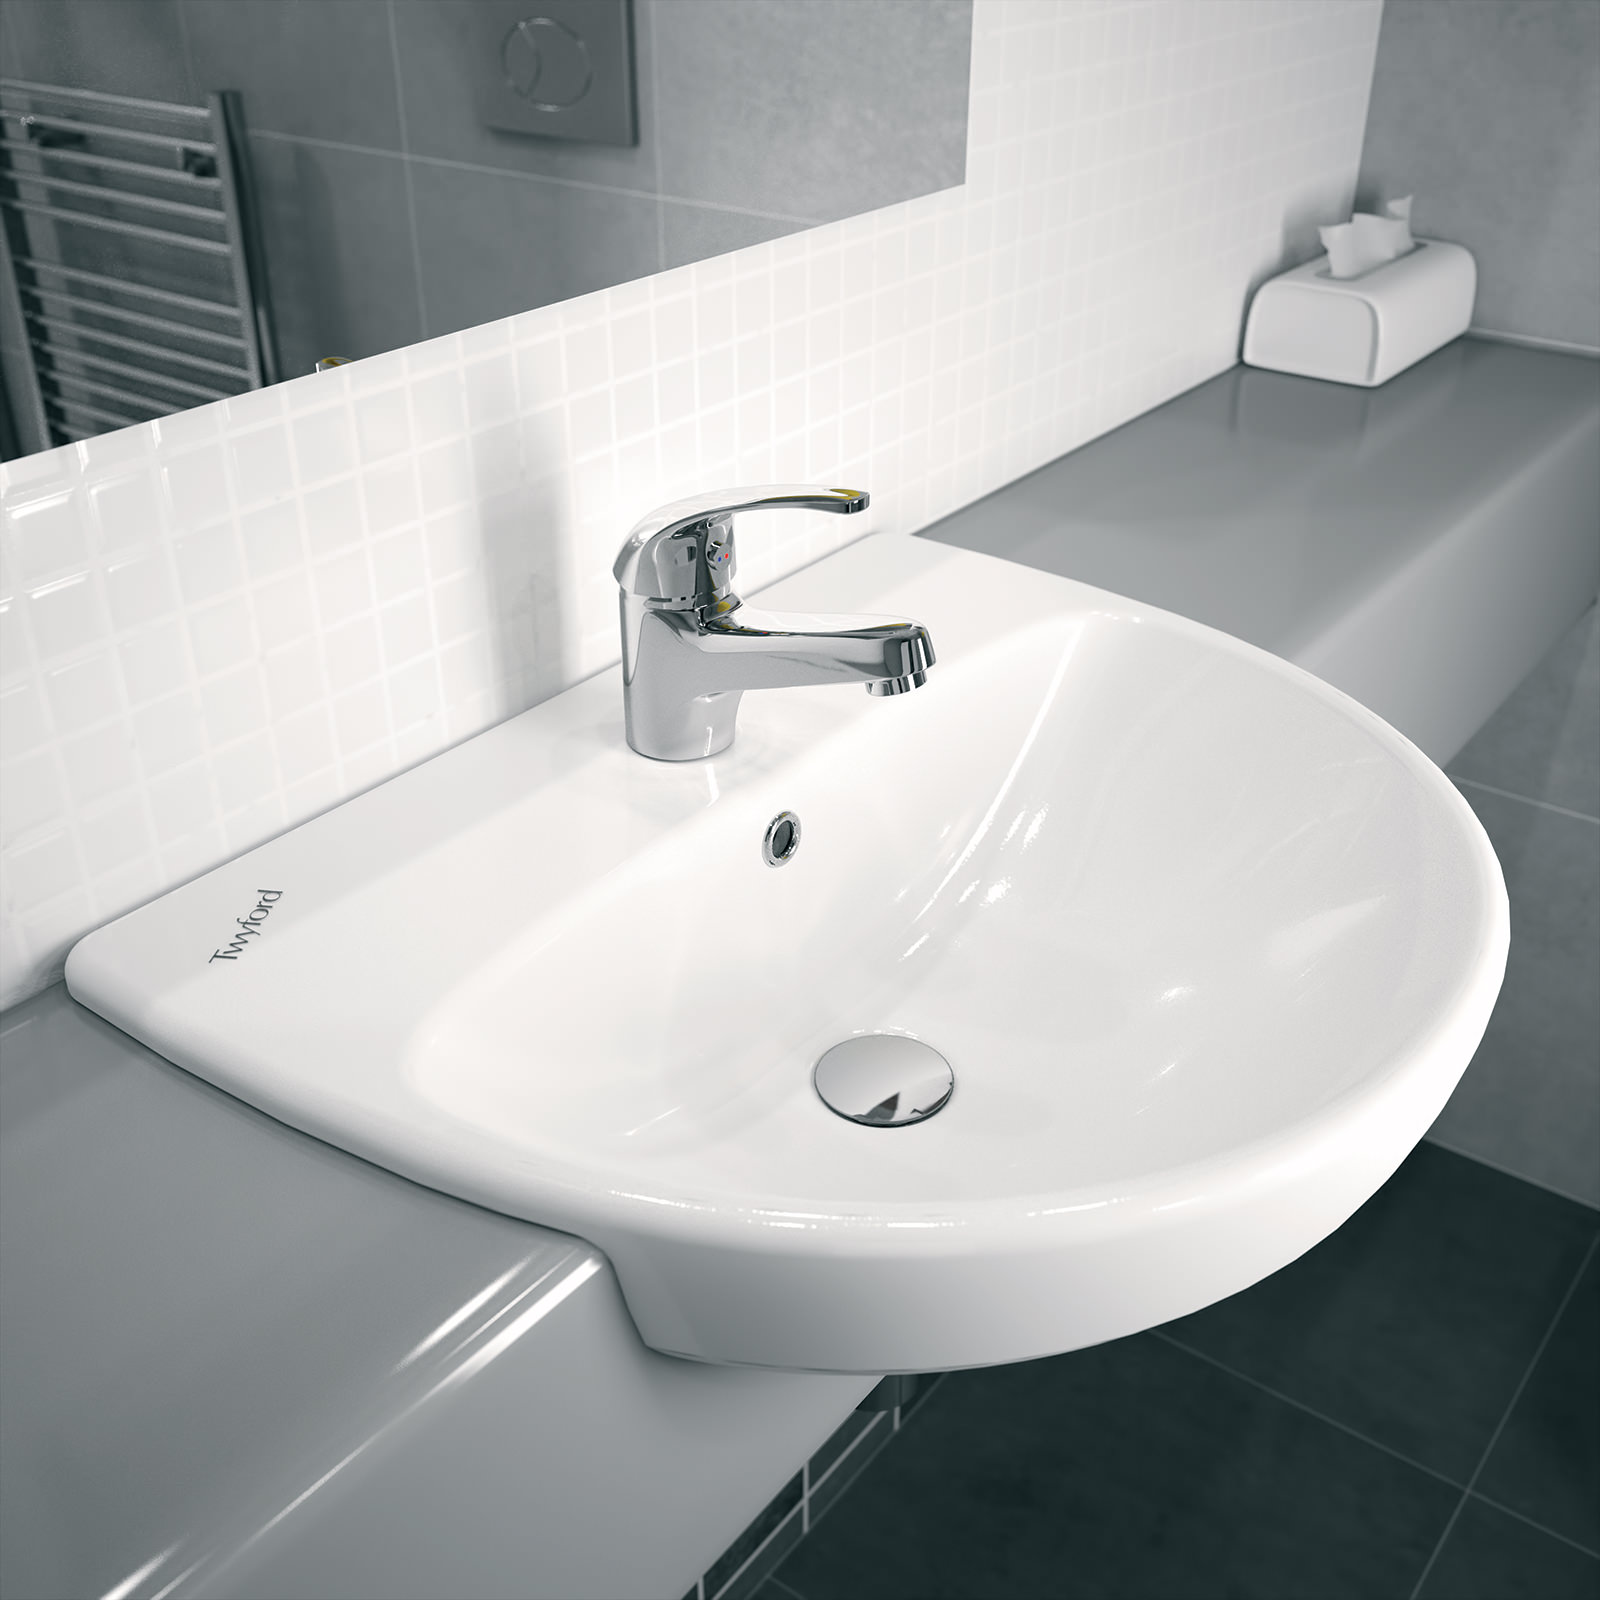 Very Twyford E100 Round 1 Centre Tap Hole 550x440mm Semi-Recessed Basin CW81